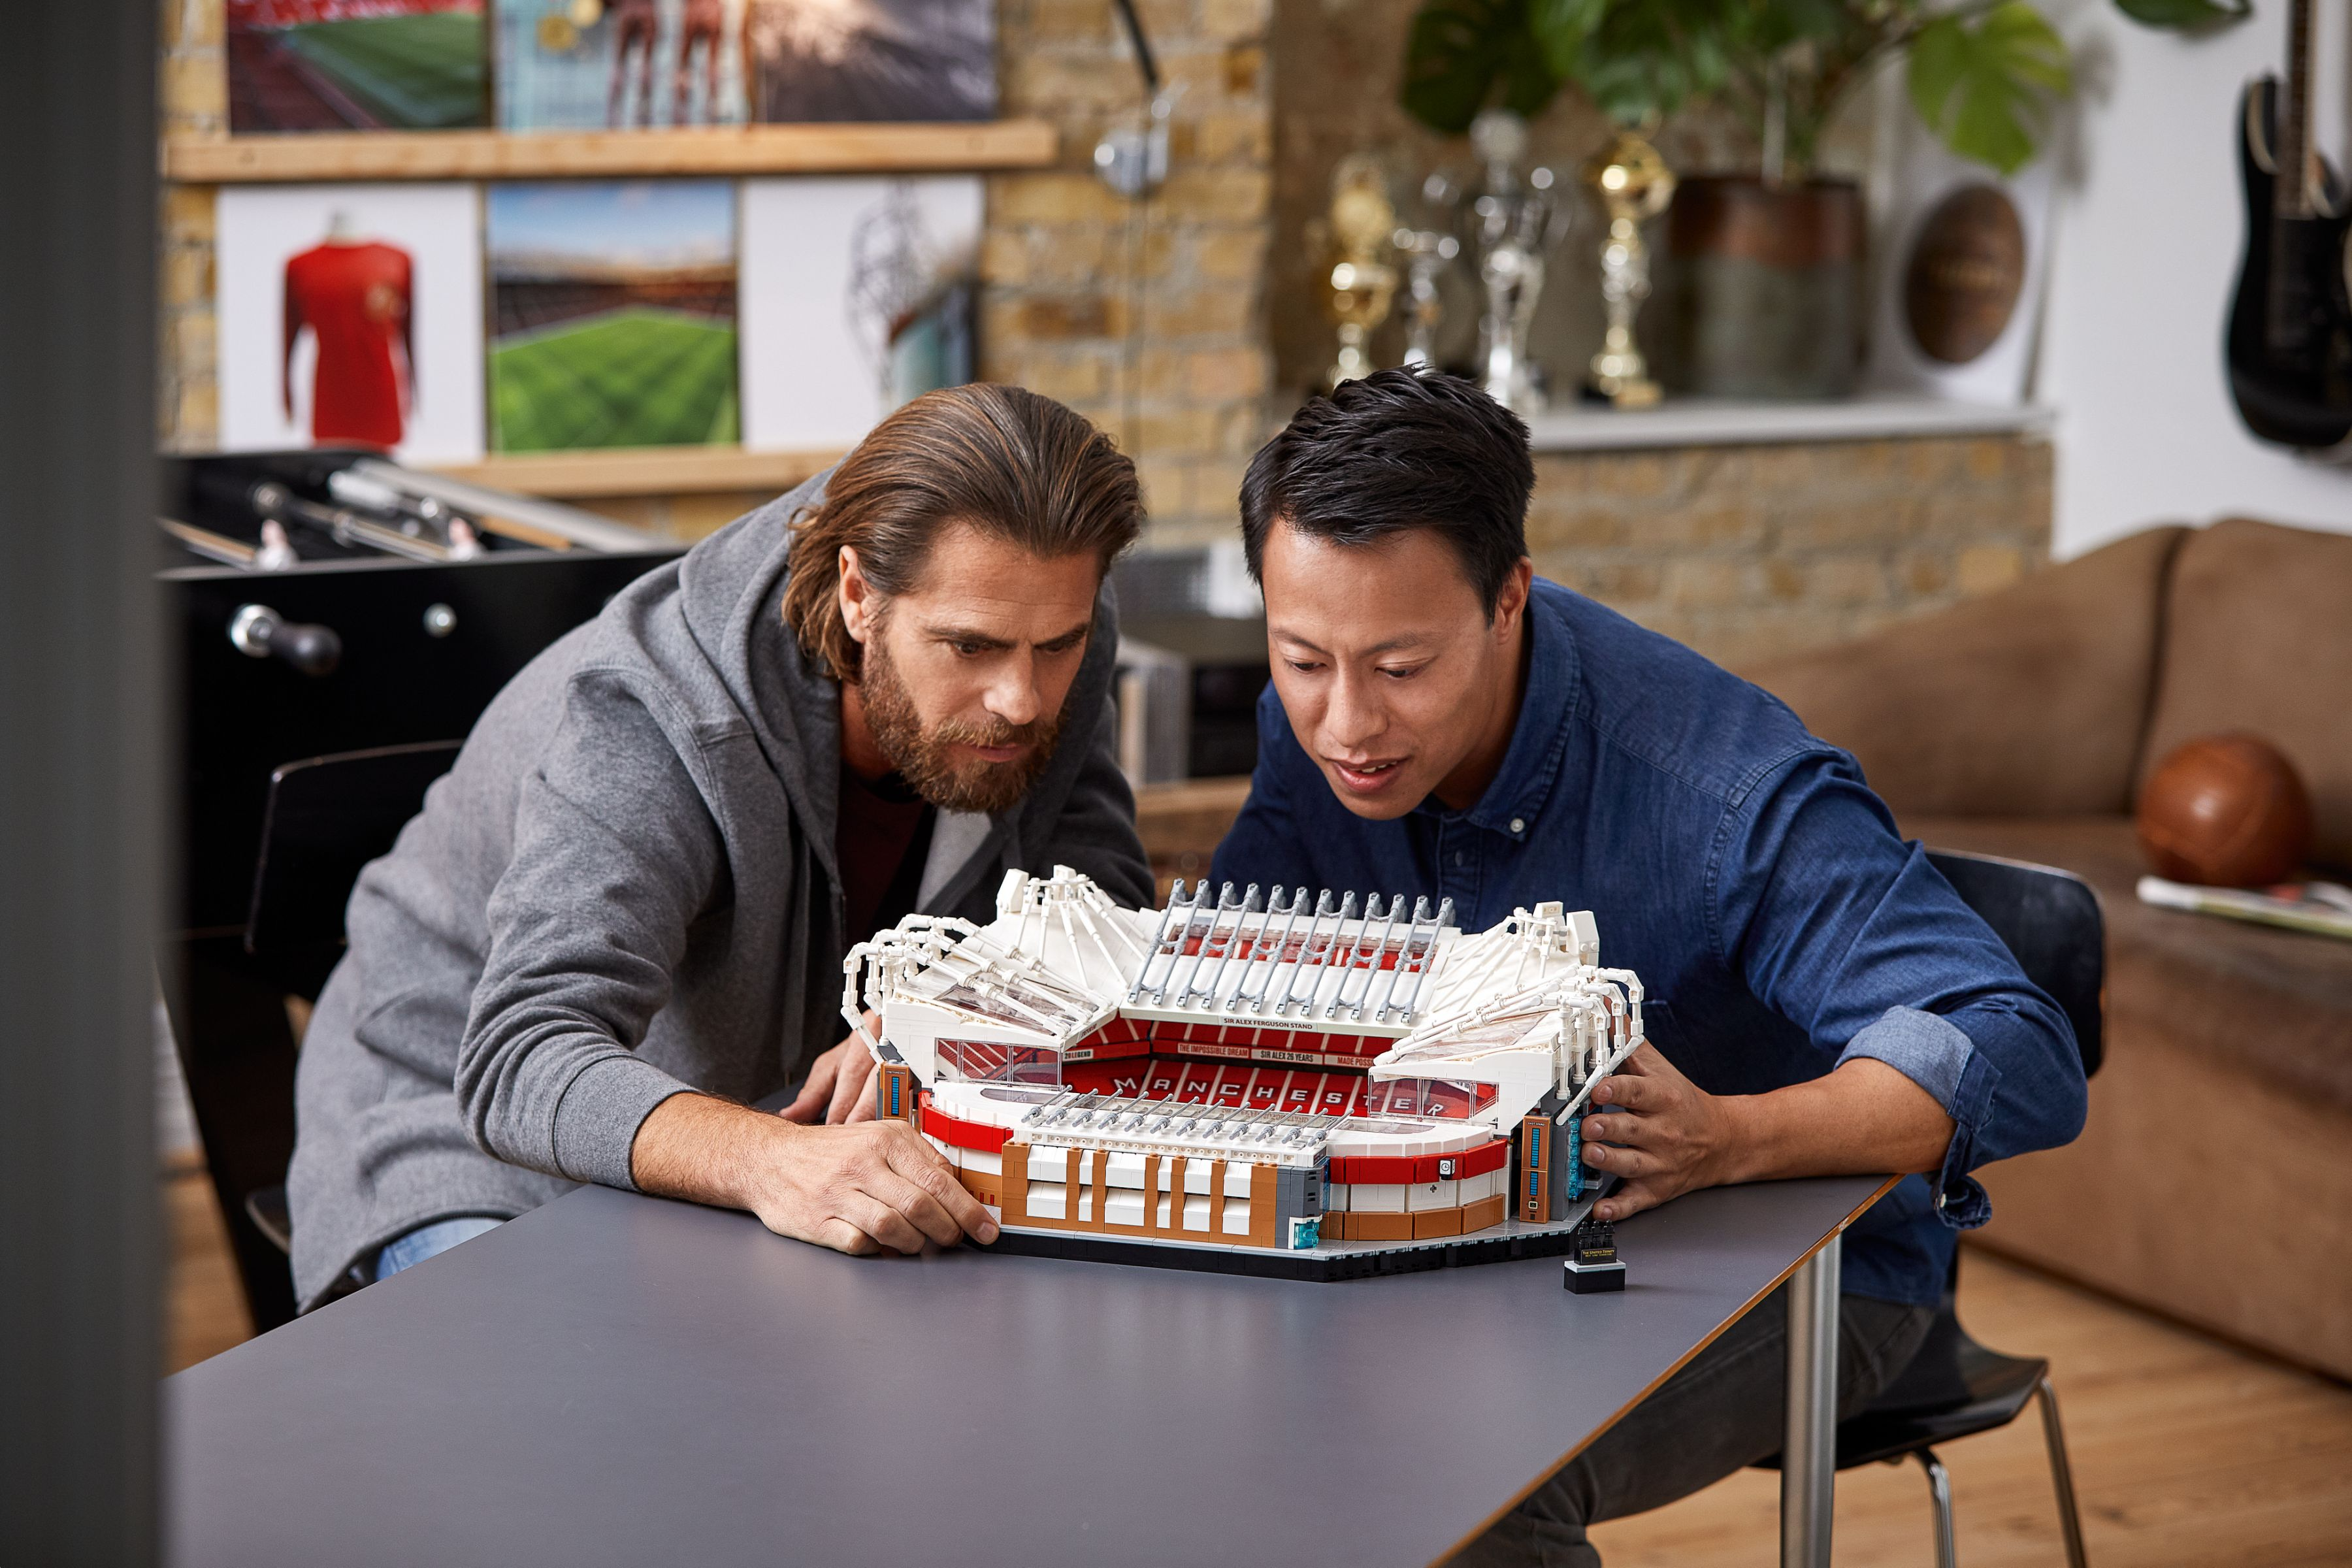 LEGO Advanced Models 10272 Old Trafford - Manchester United LEGO_10272_alt14.jpg